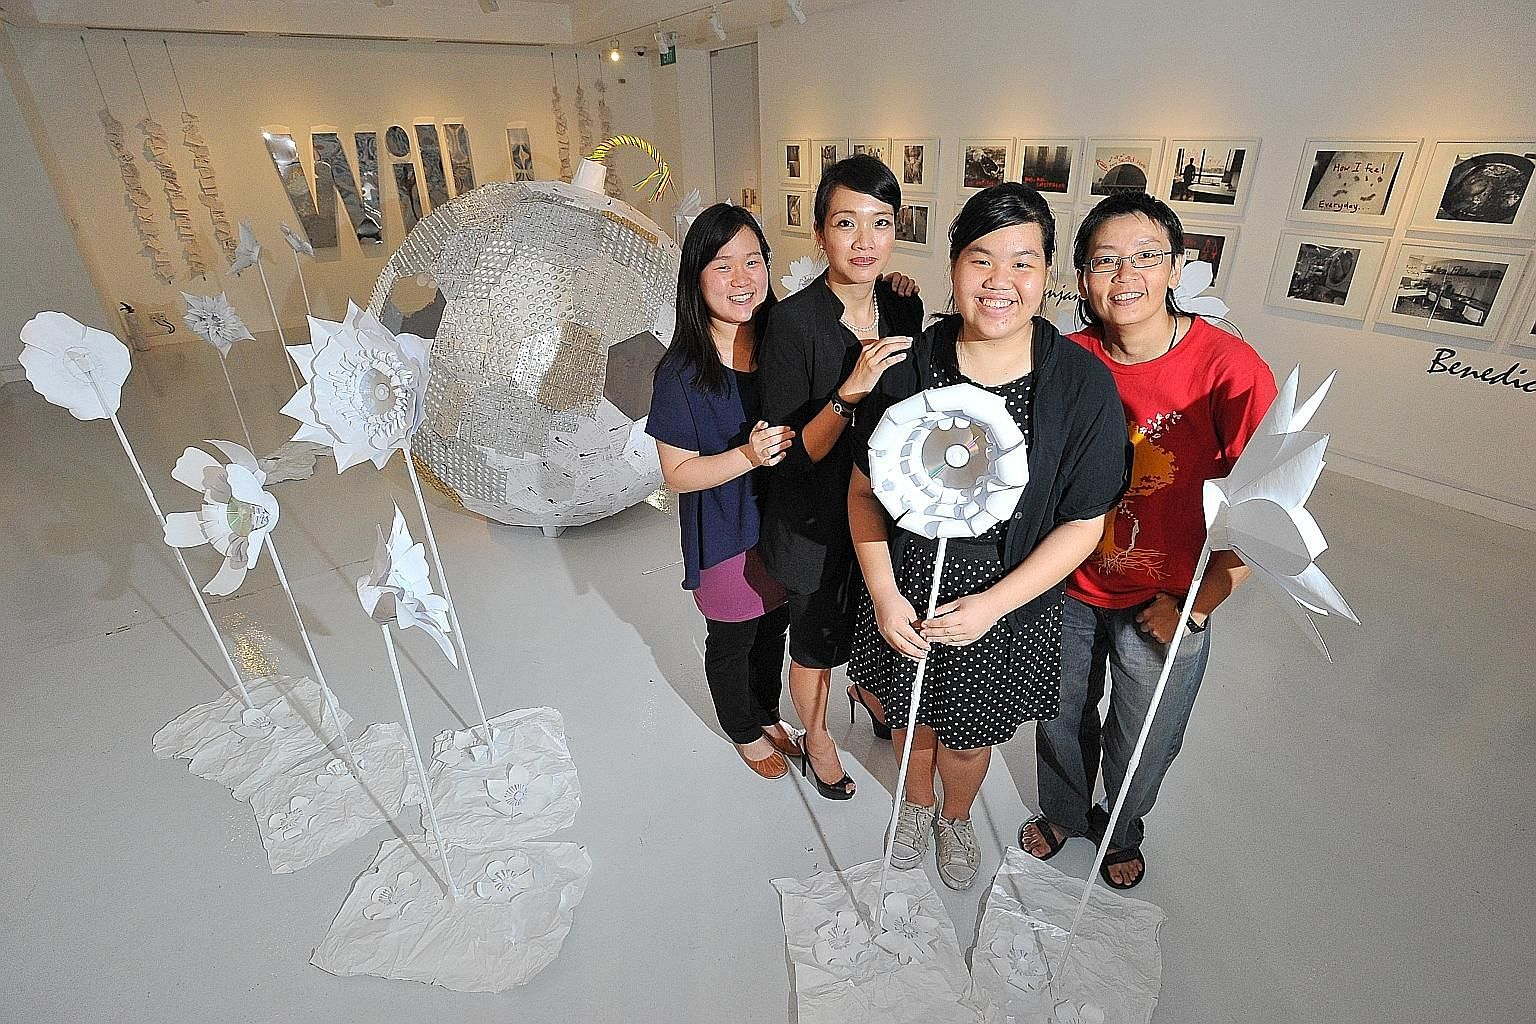 Eco-artist Rene Ong (in red), in her 40s, worked with four patients, one of whom was student Summer Tham (in polka-dot outfit), 16, to produce The Life Within Transcends The Ticking Time Bomb (in the background). With them are project coordinators Lo